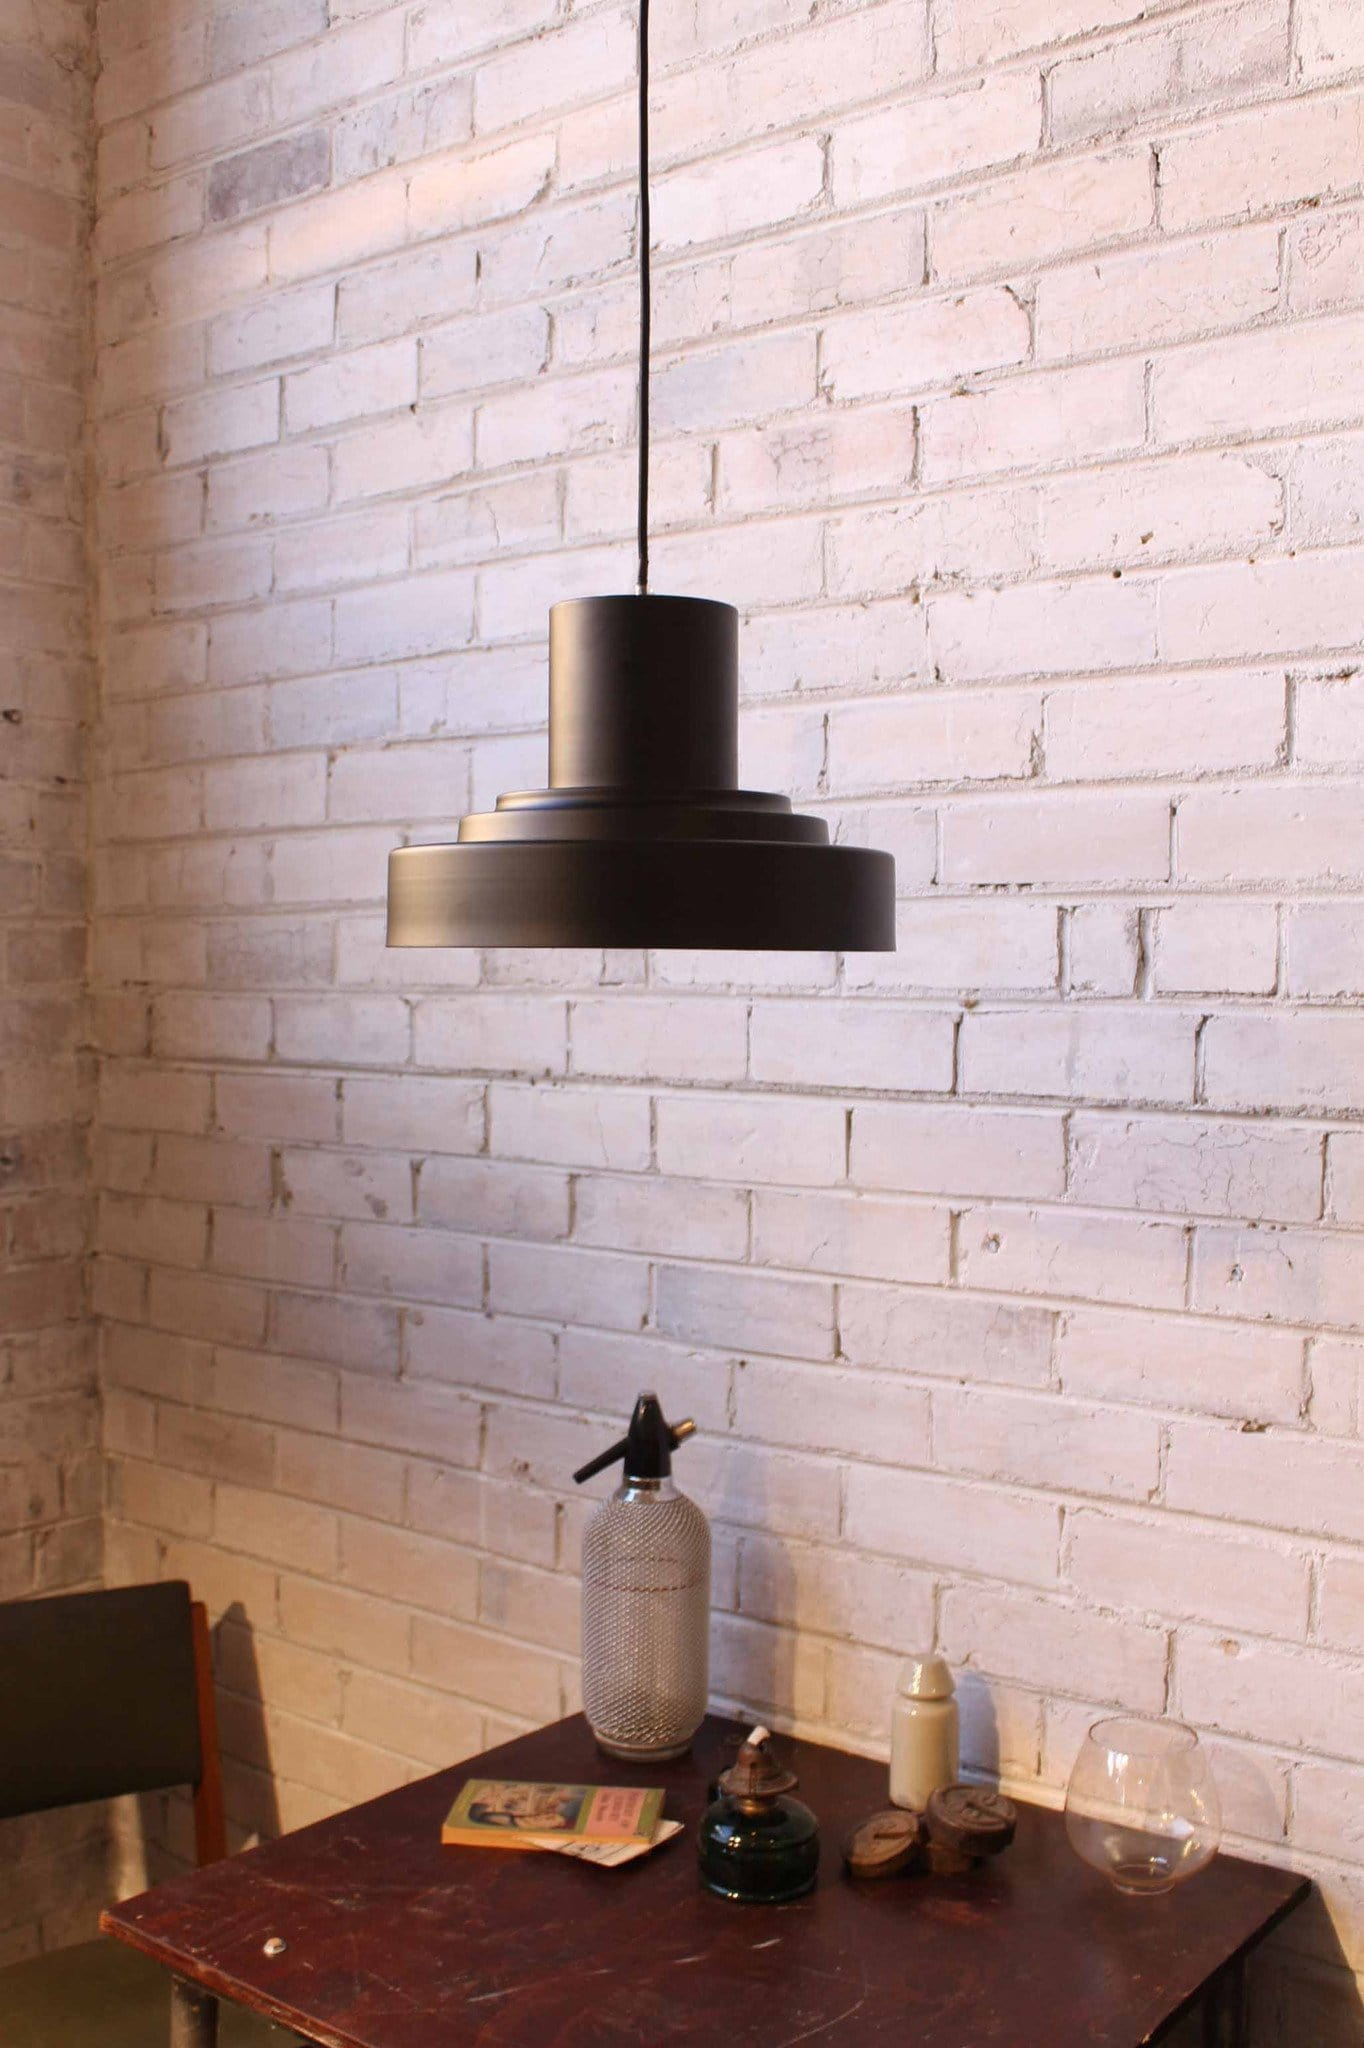 Stepped ceiling light in black metal